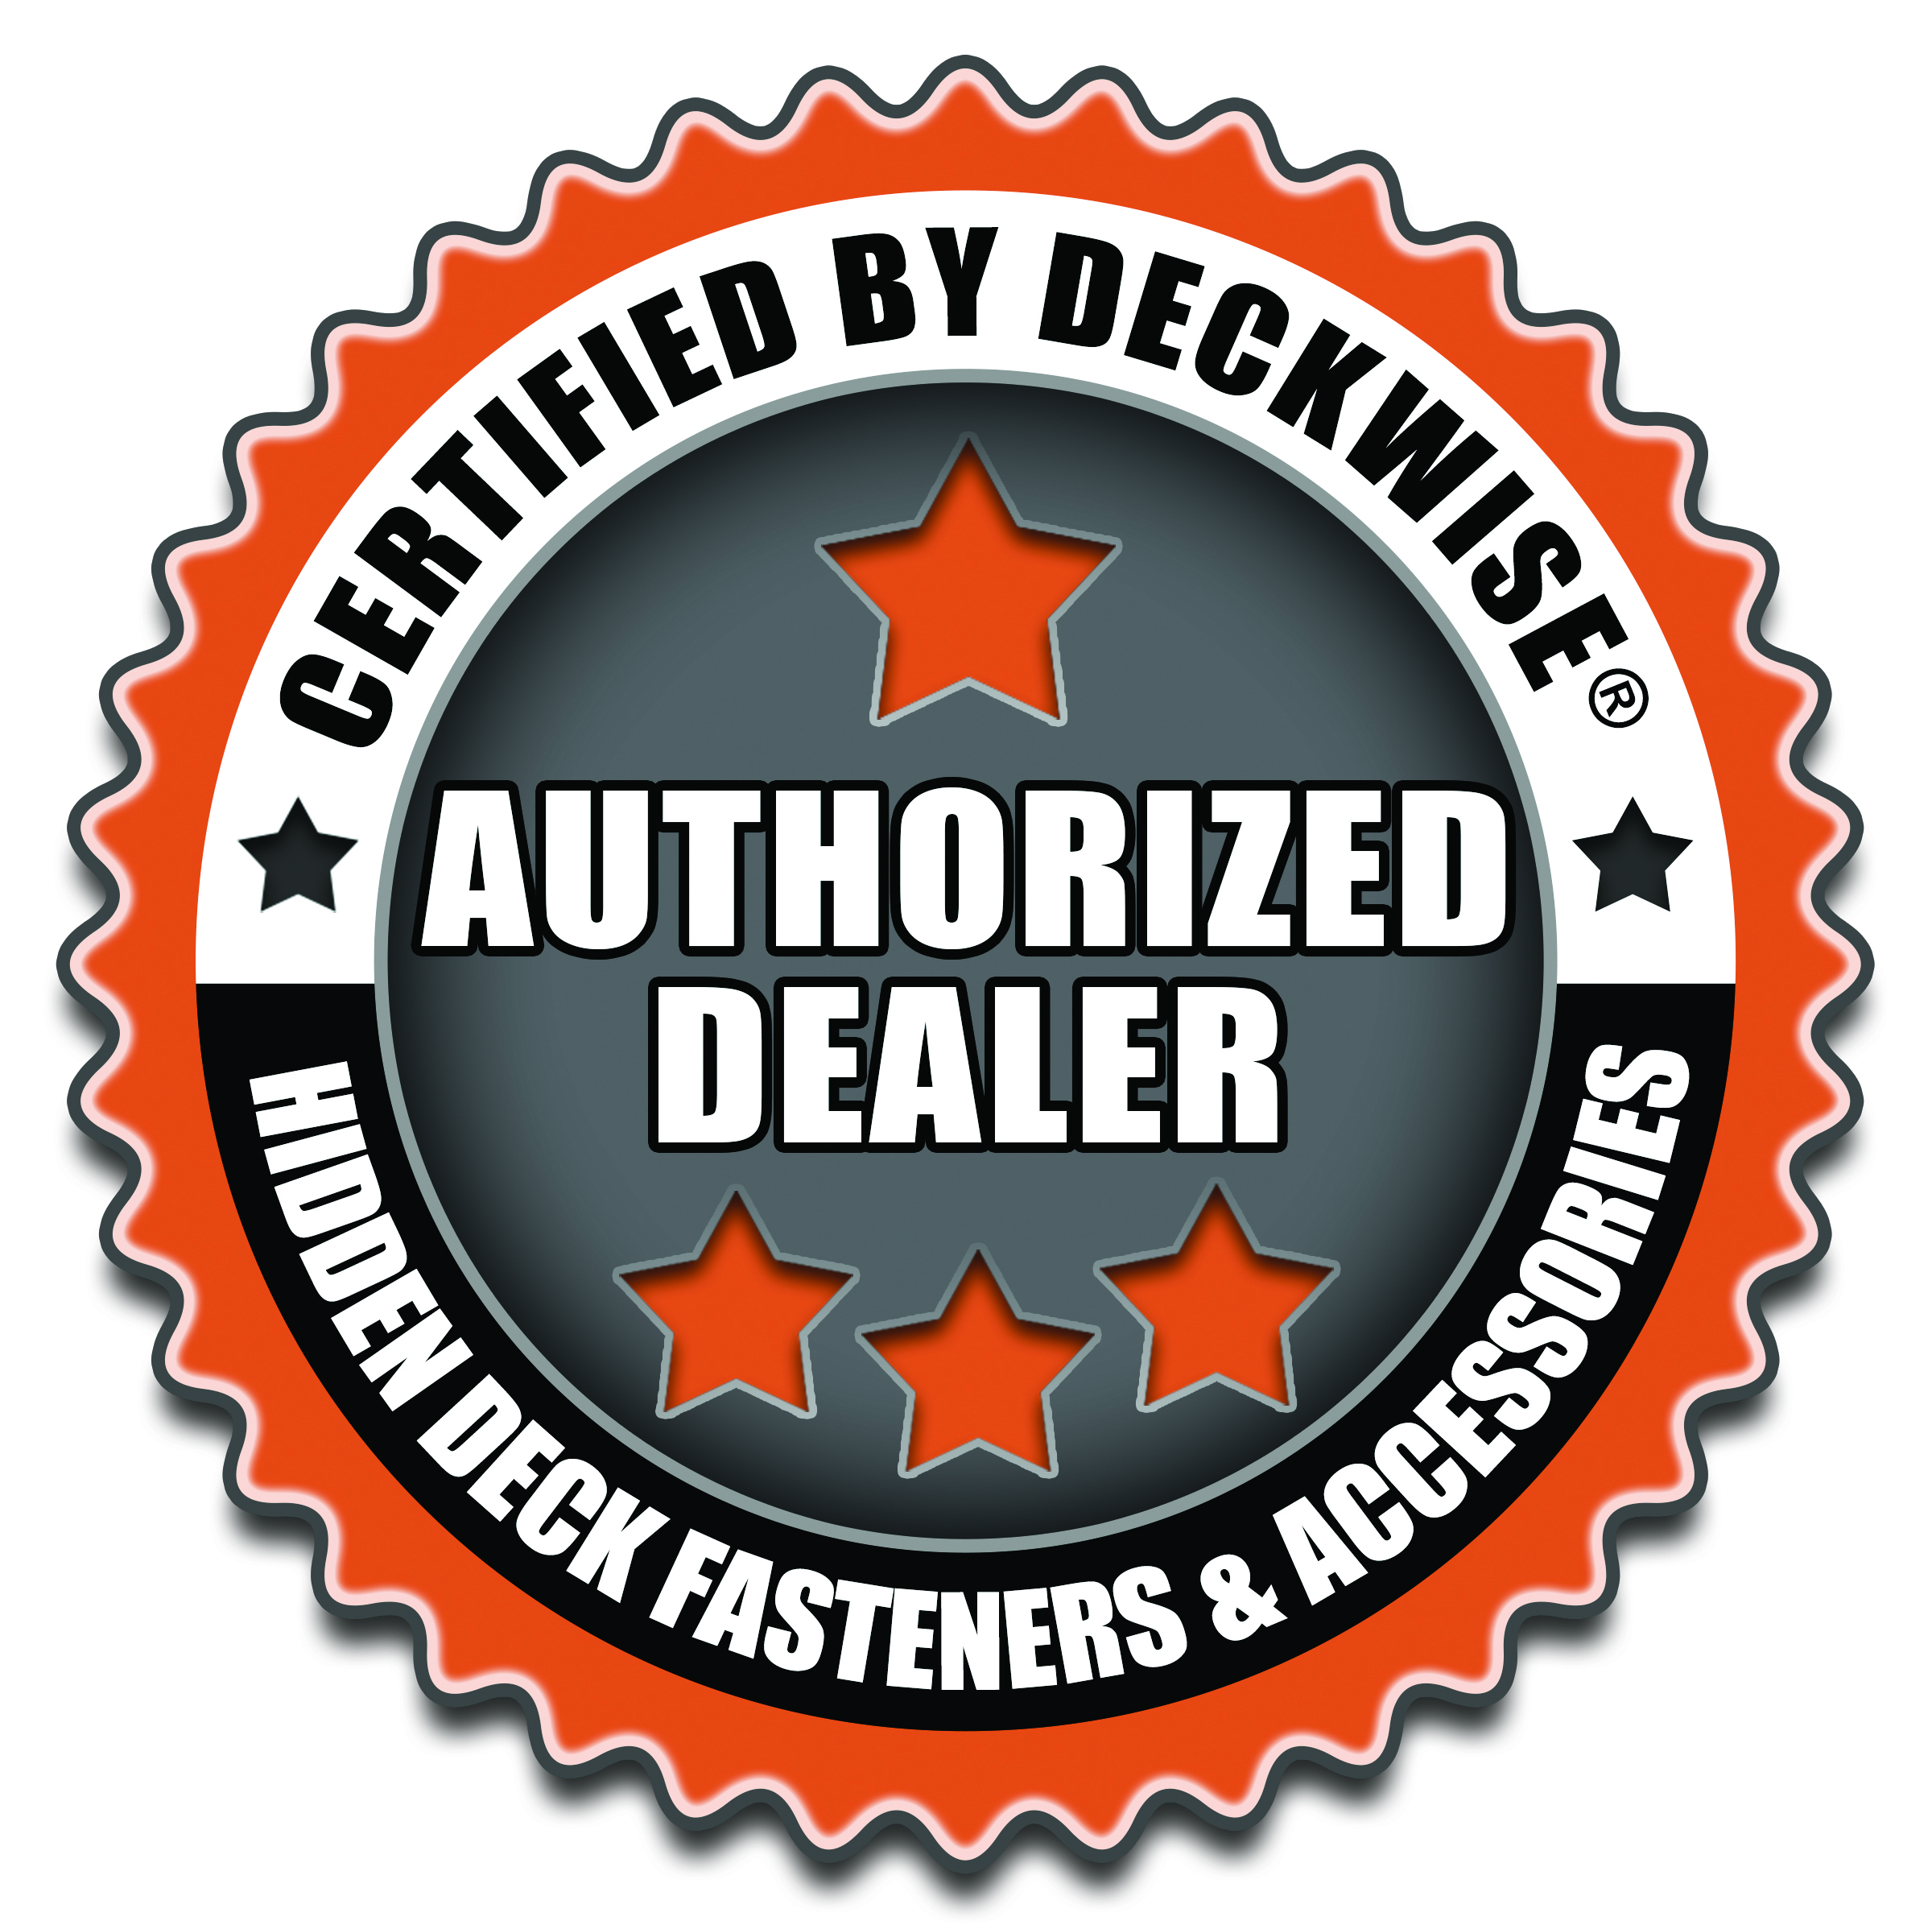 authorized-dealer-logo-seal-large.jpg